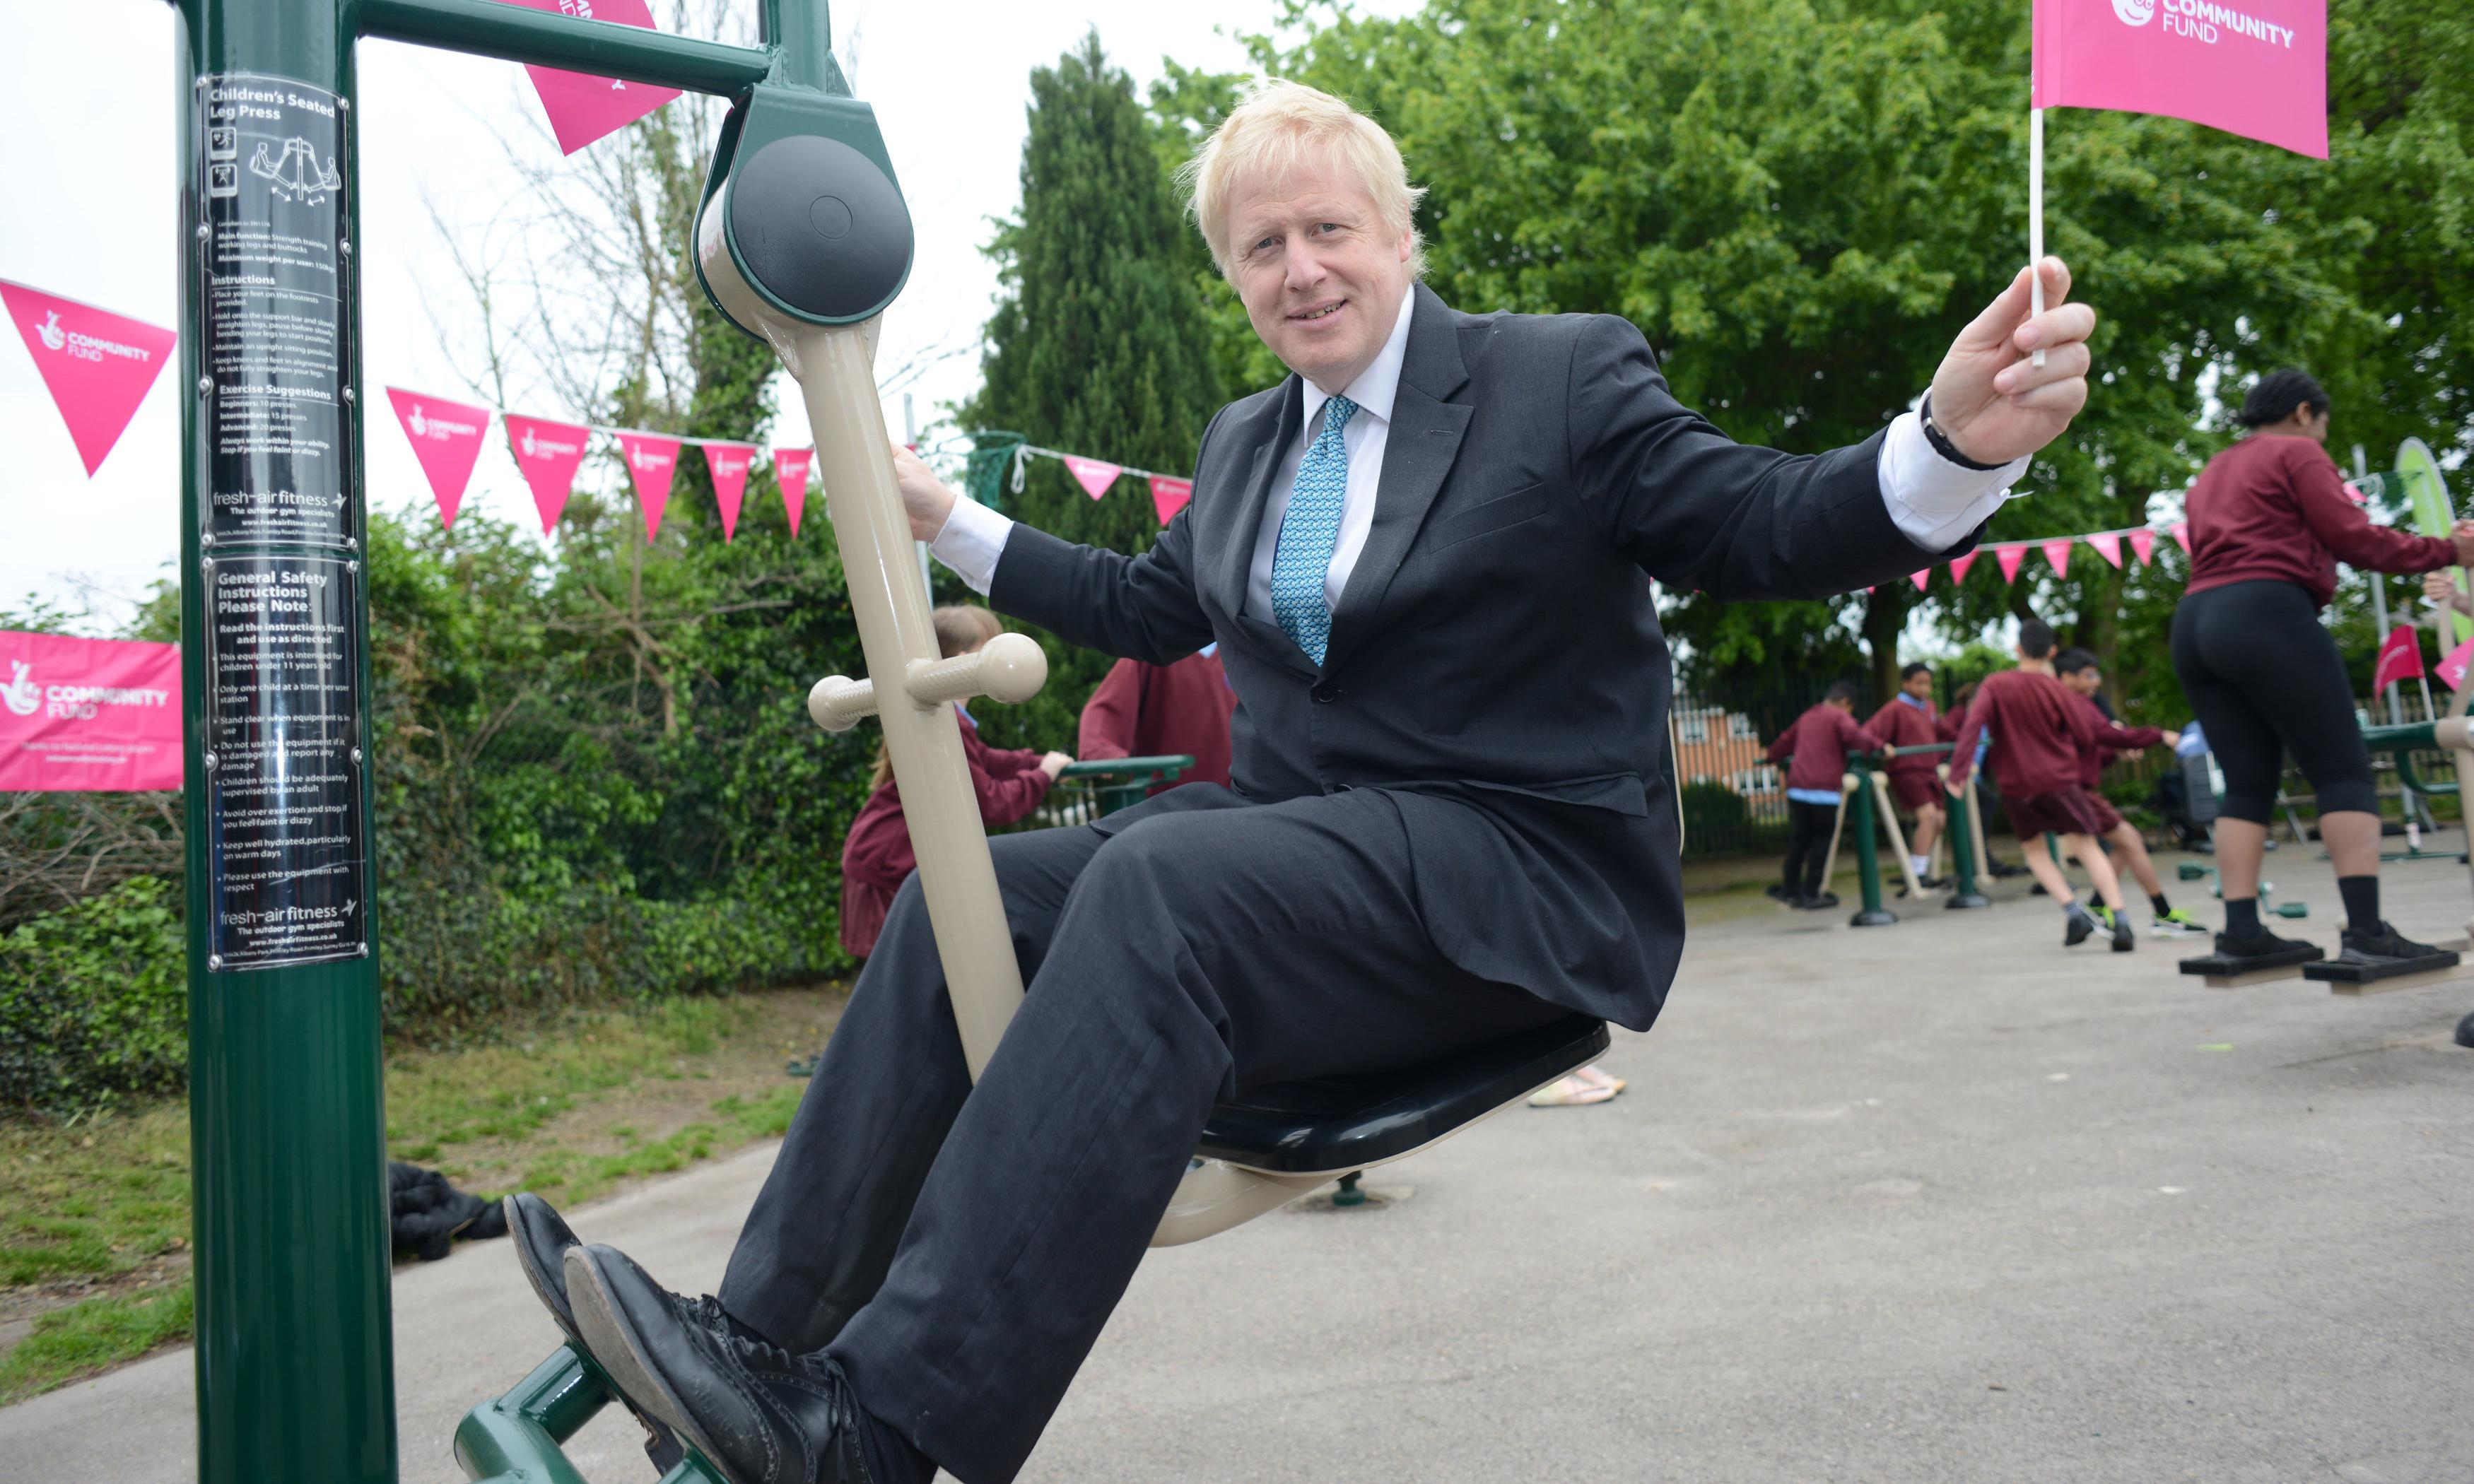 There's nothing safe about Boris Johnson's seat